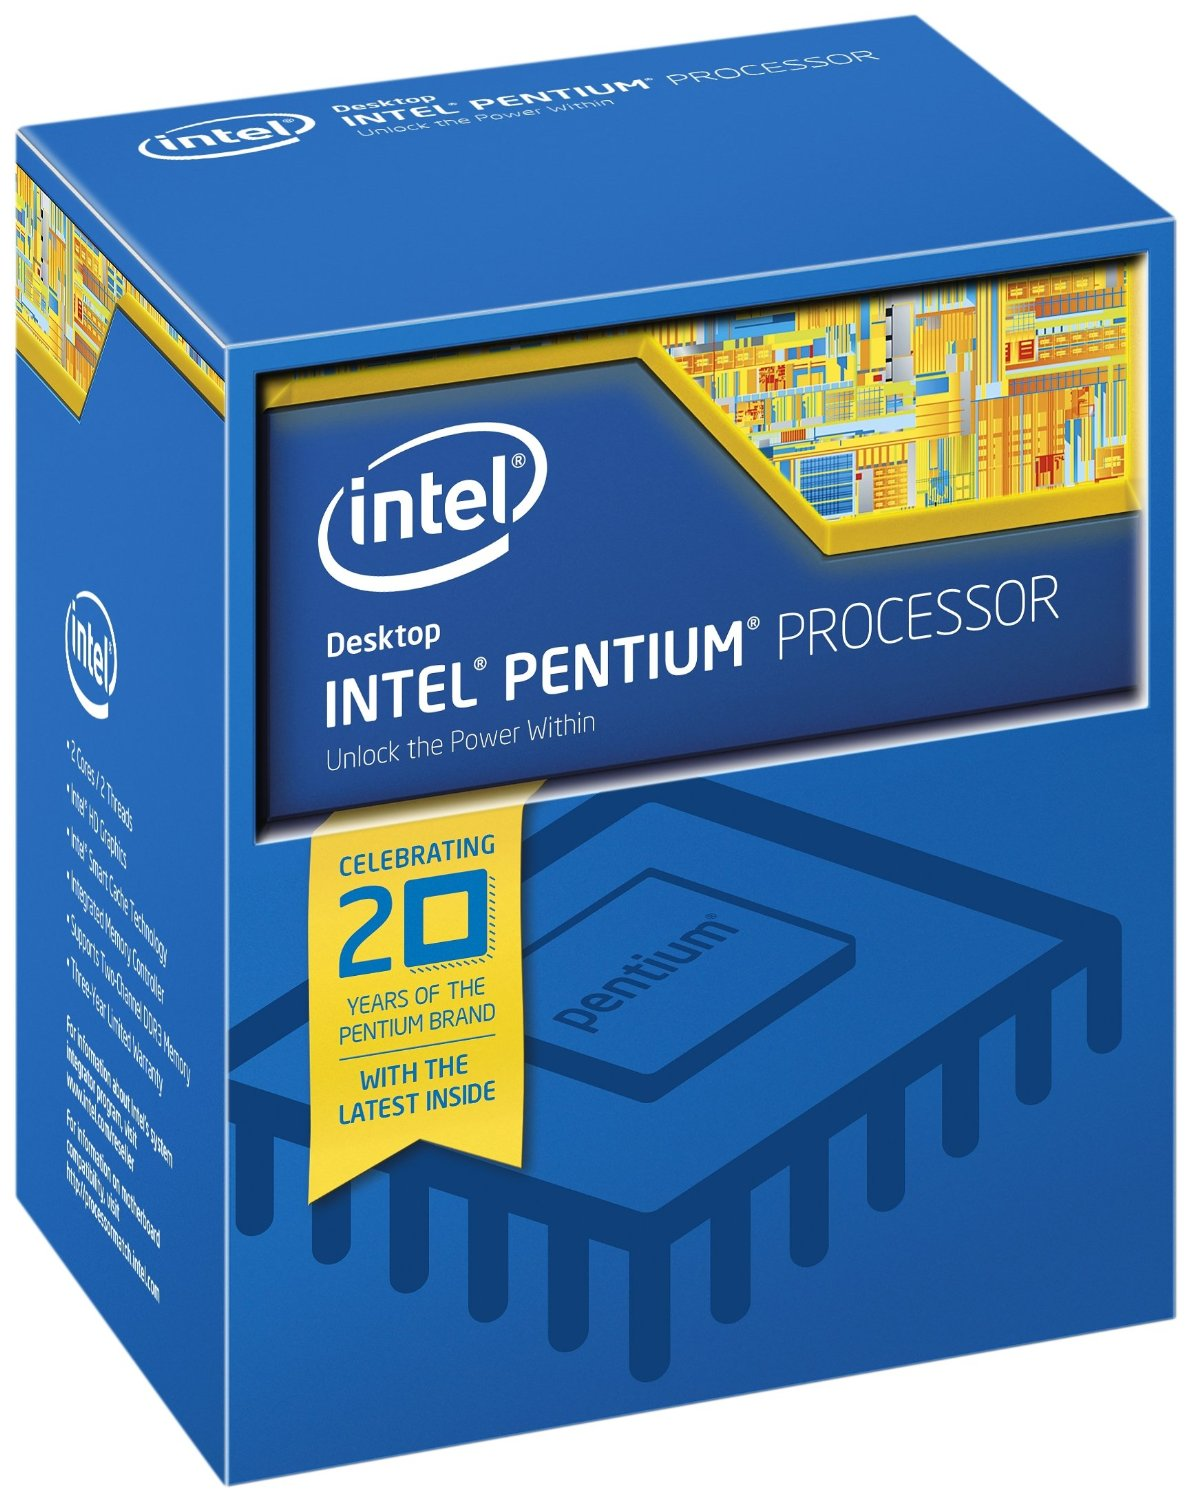 MICRO INTEL  PENTIUM D CORE G4520 3.6GHZ S1151 3MB IN BOX